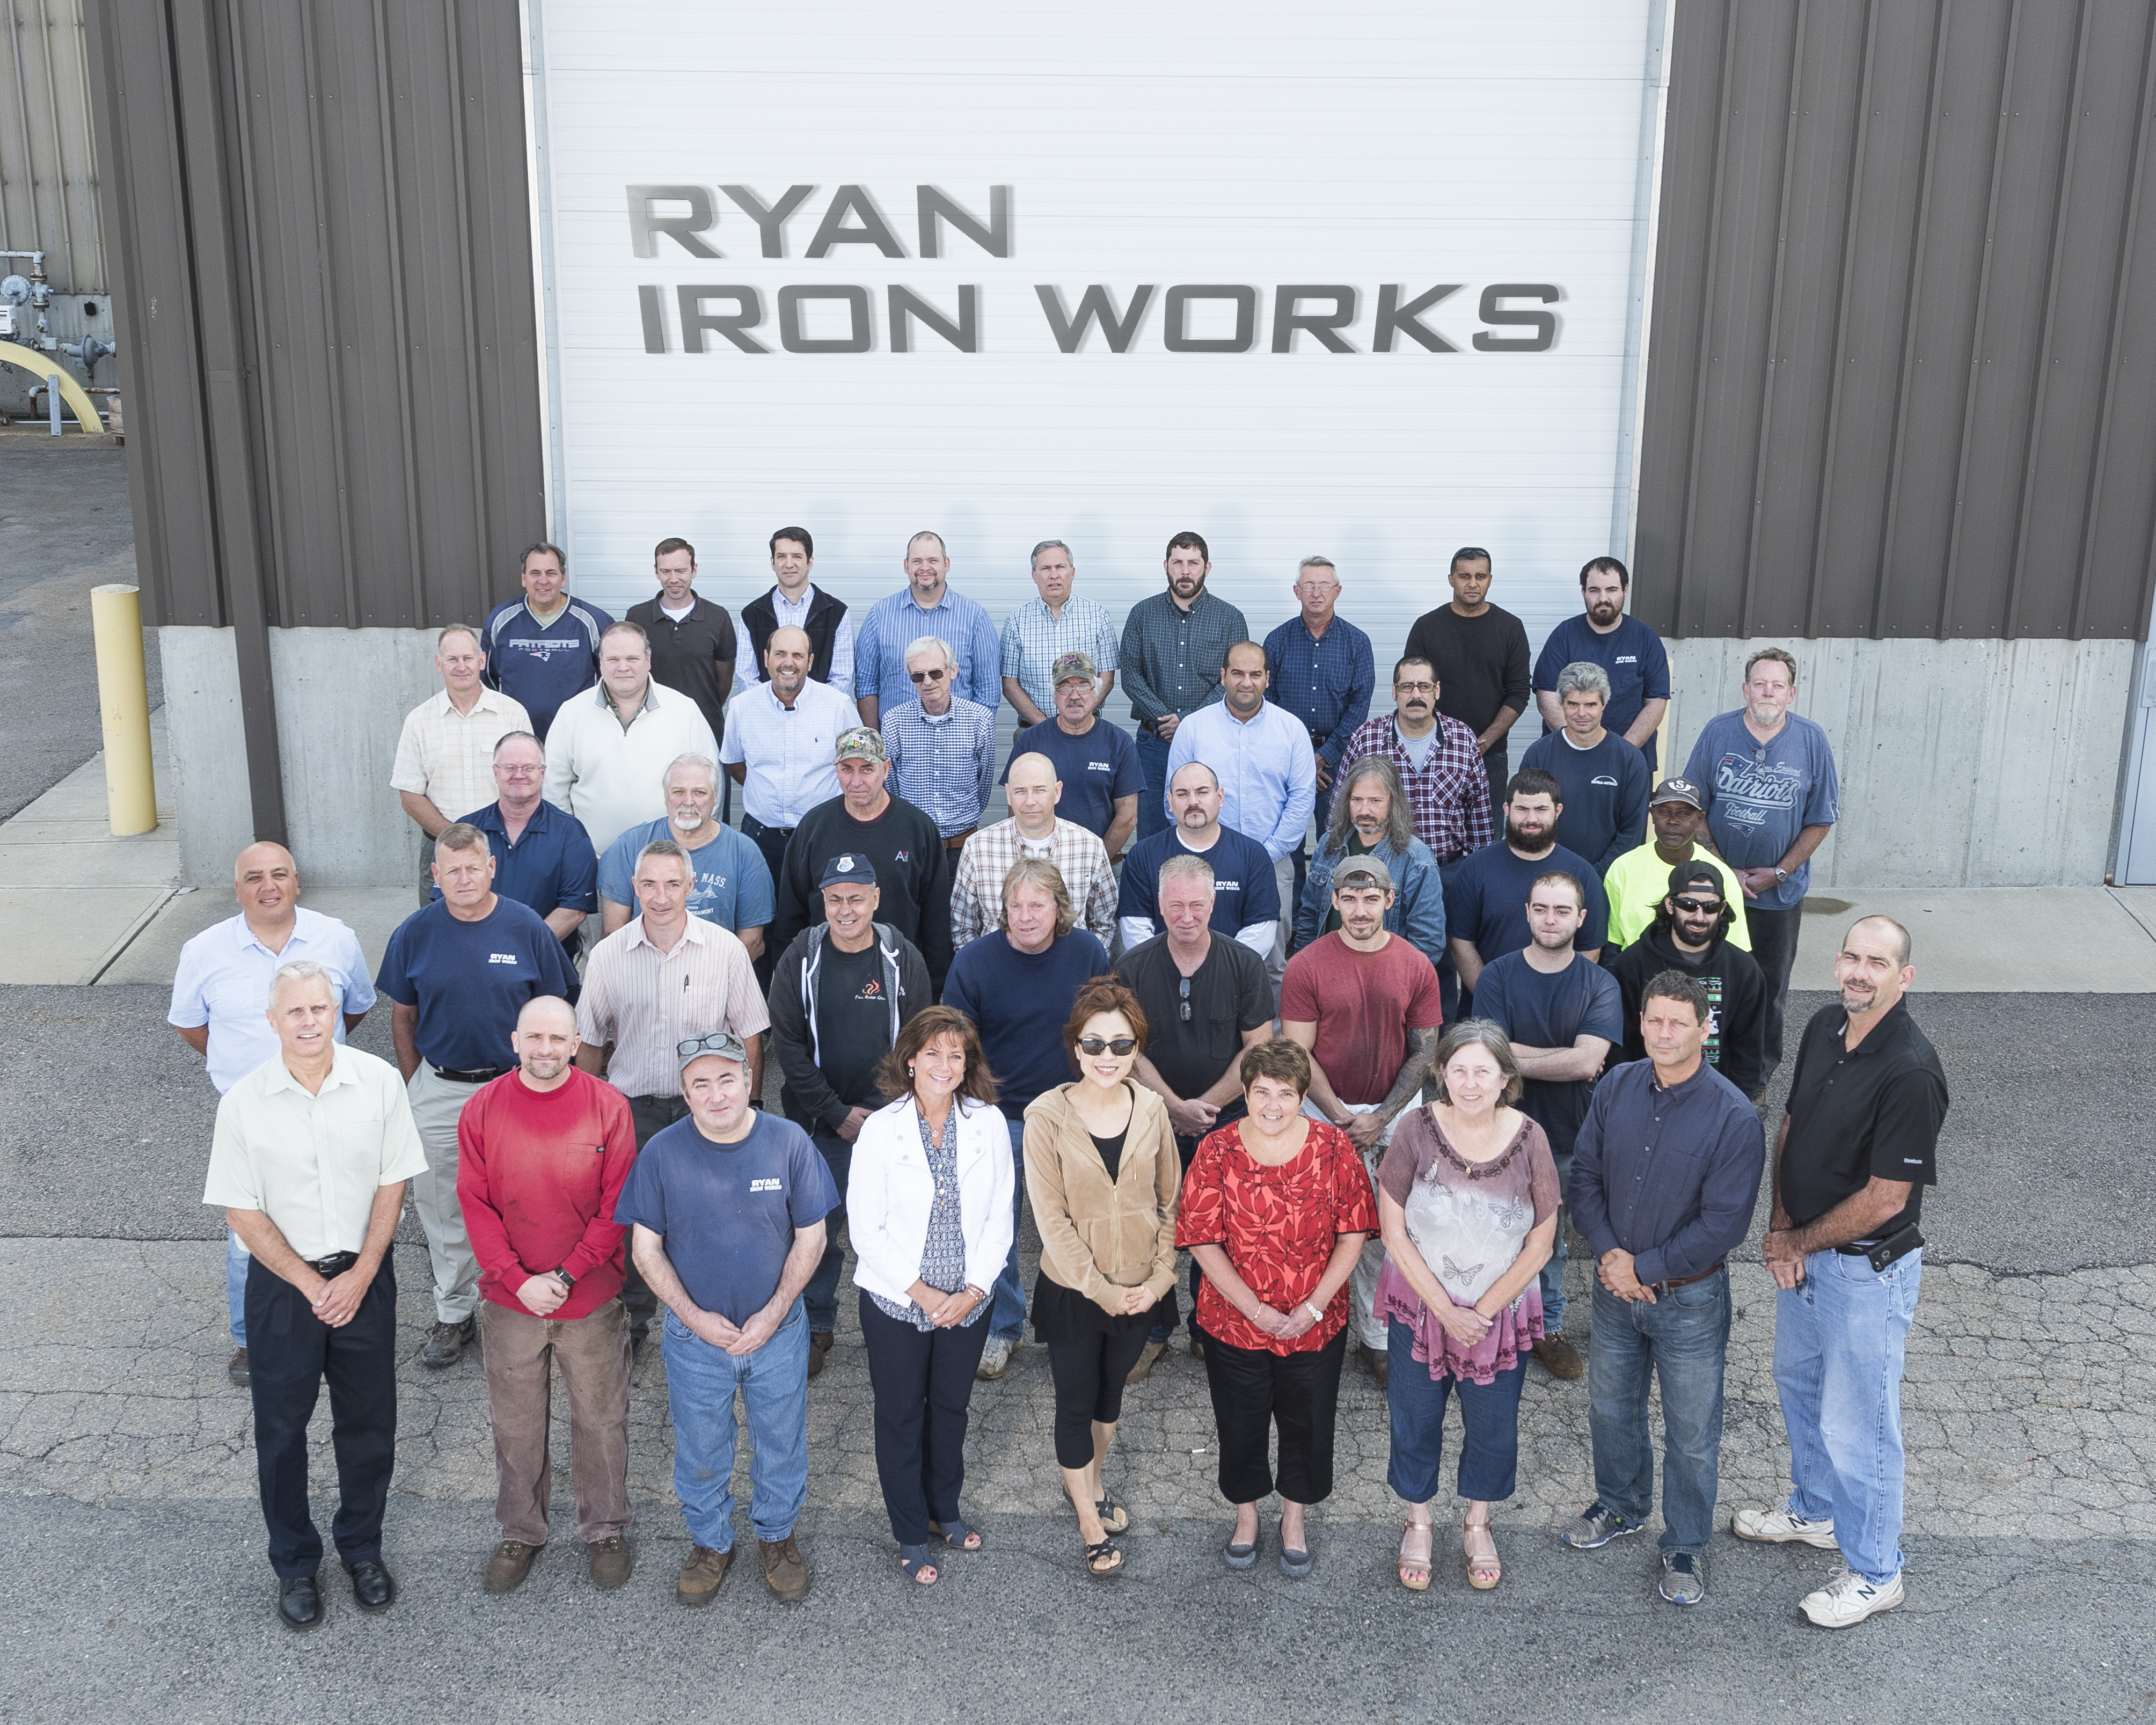 Ryan Iron Works Company Picture (002)